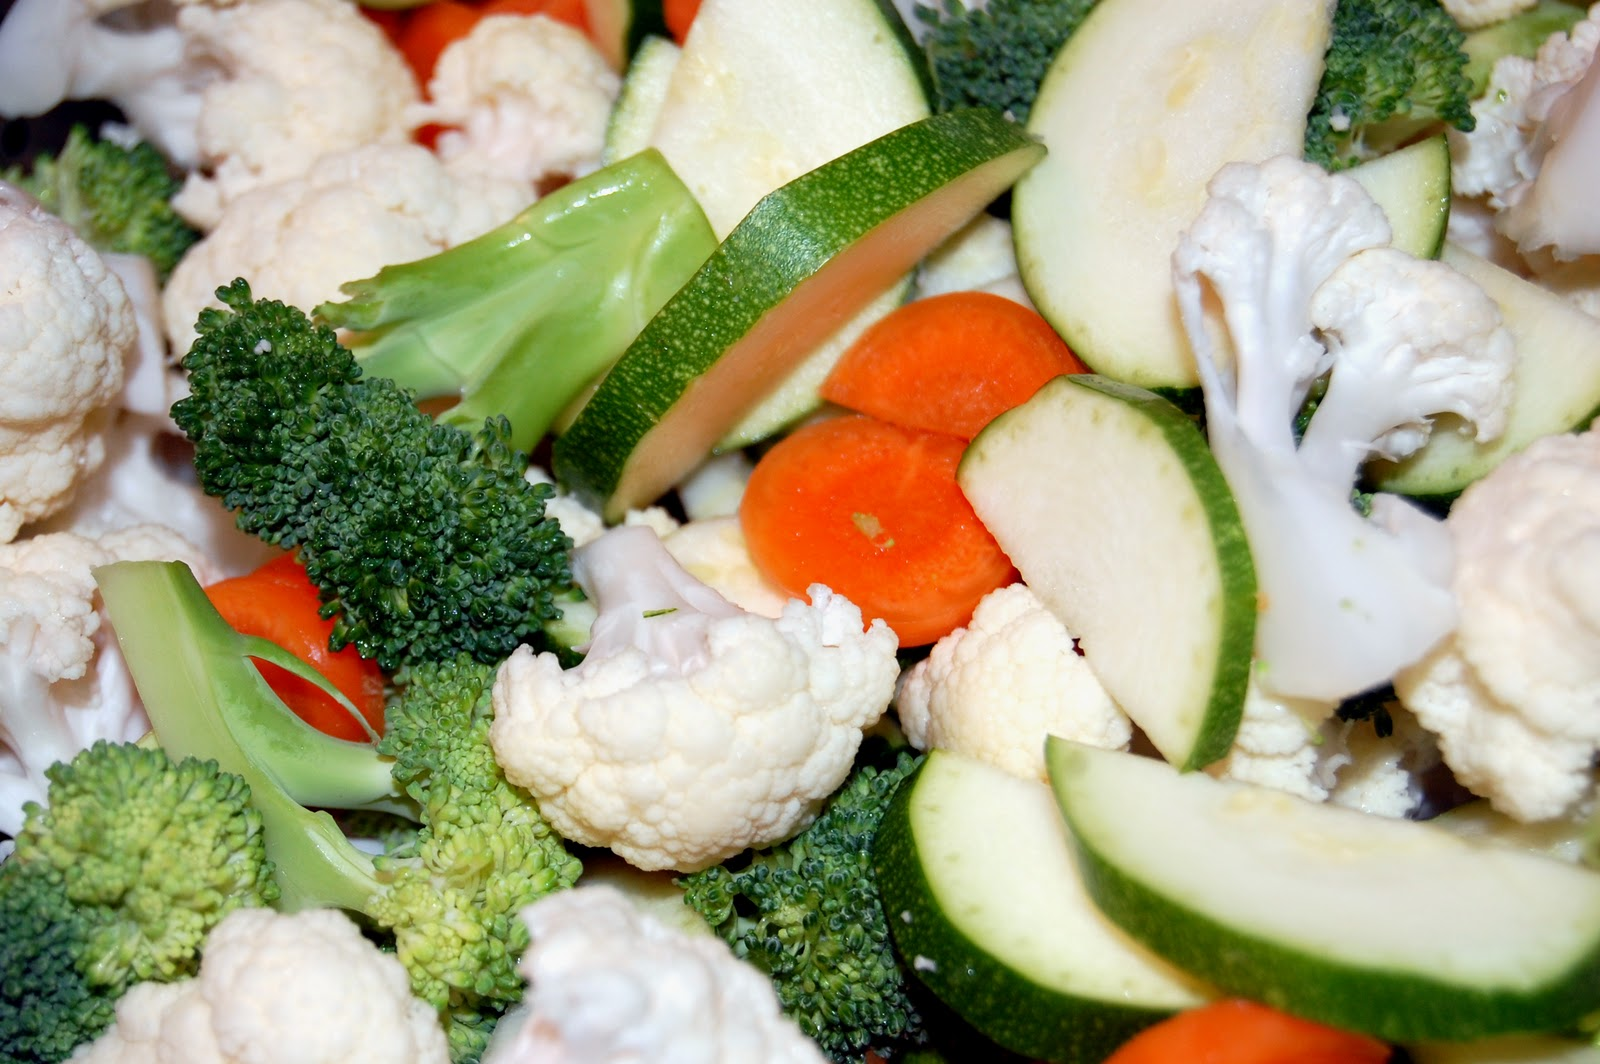 One Sunny Home: Steamed Vegetables with Lemon-Garlic Dressing